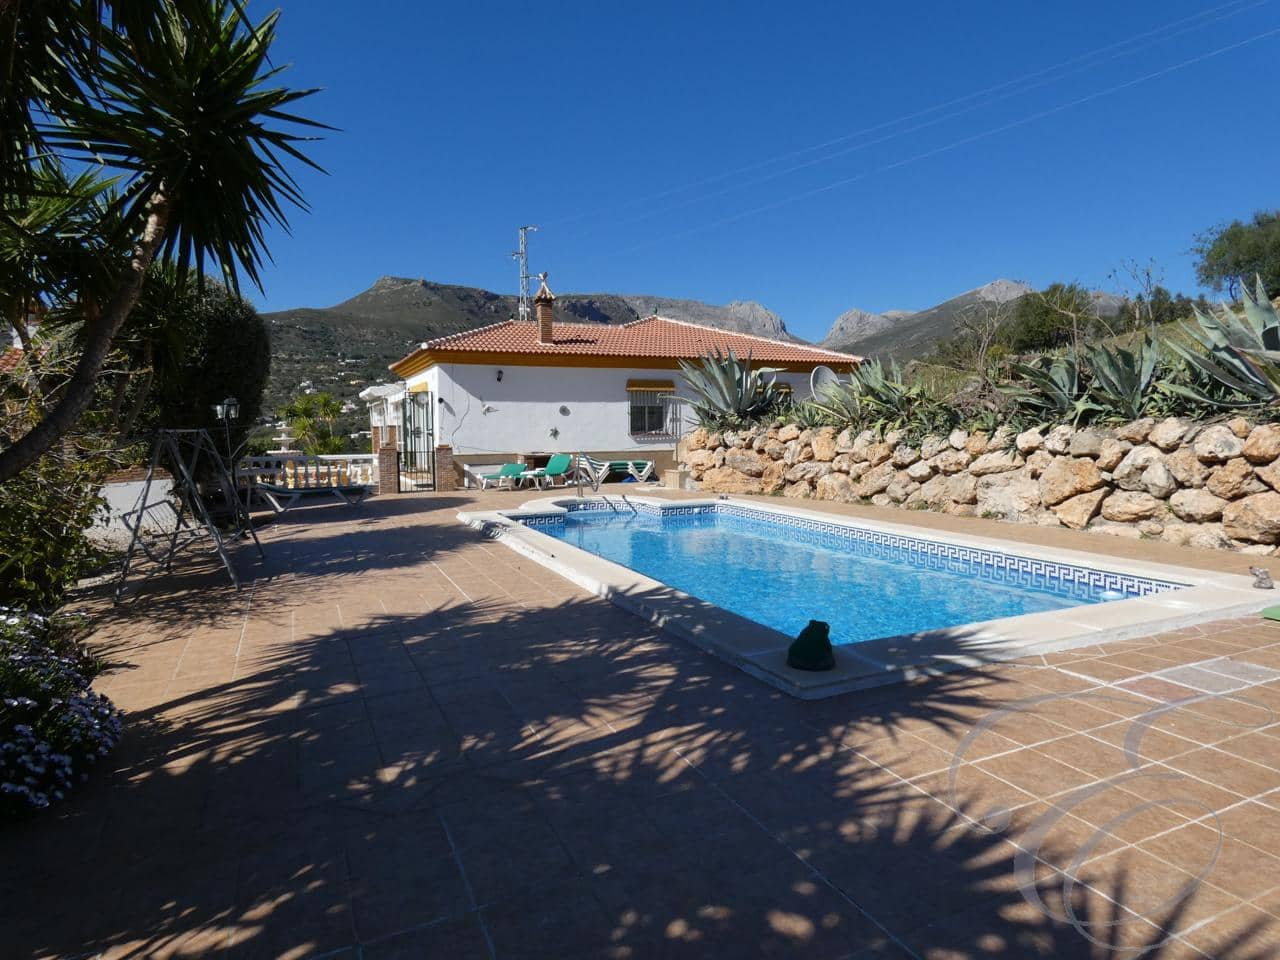 3 bedroom Villa for sale in Alcaucin with pool - € 349,950 (Ref: 4667505)